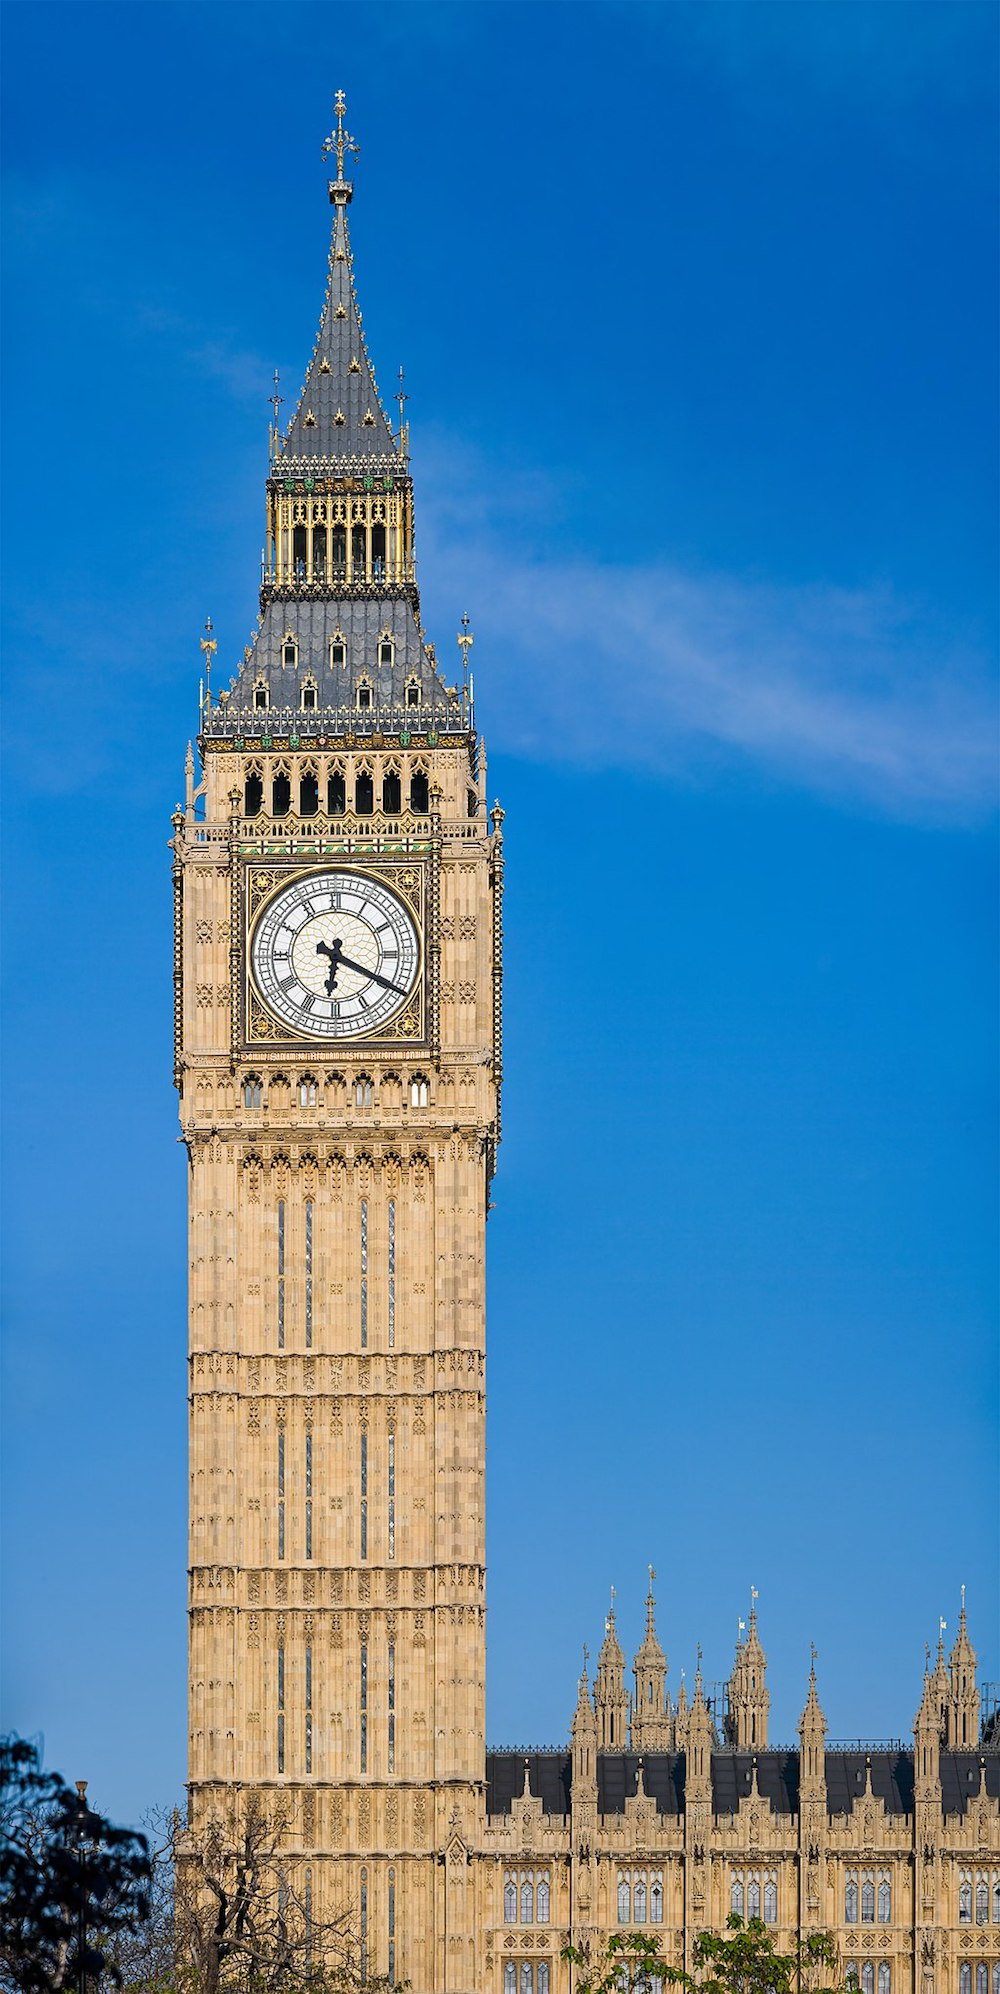 Big Ben: Clock Tower at Palace Of Westminster. Photo Credit: © David Iliff via Wikimedia Commons.